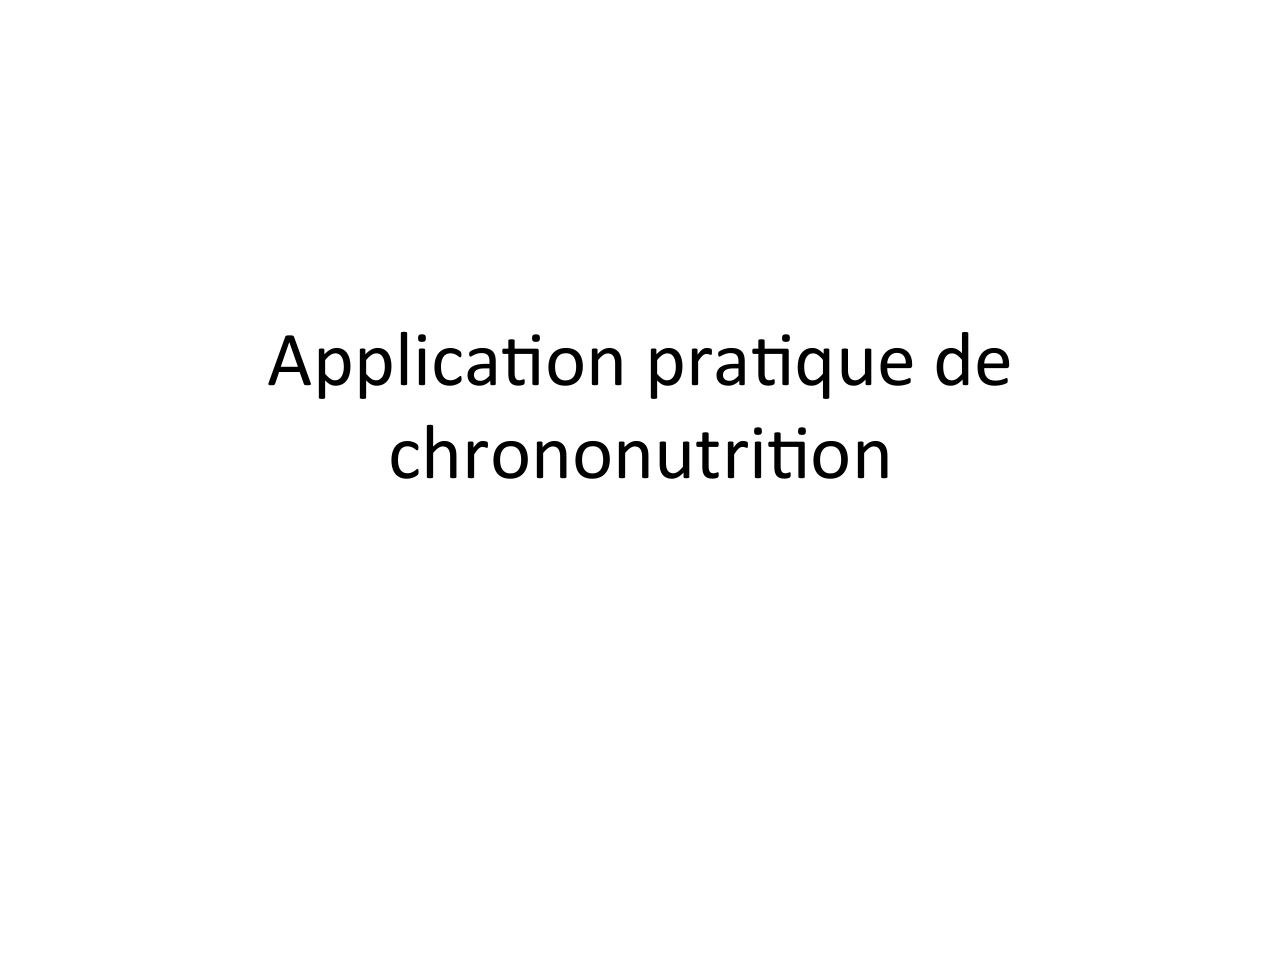 5application pratique chrononutrition - copie.pdf - page 2/34